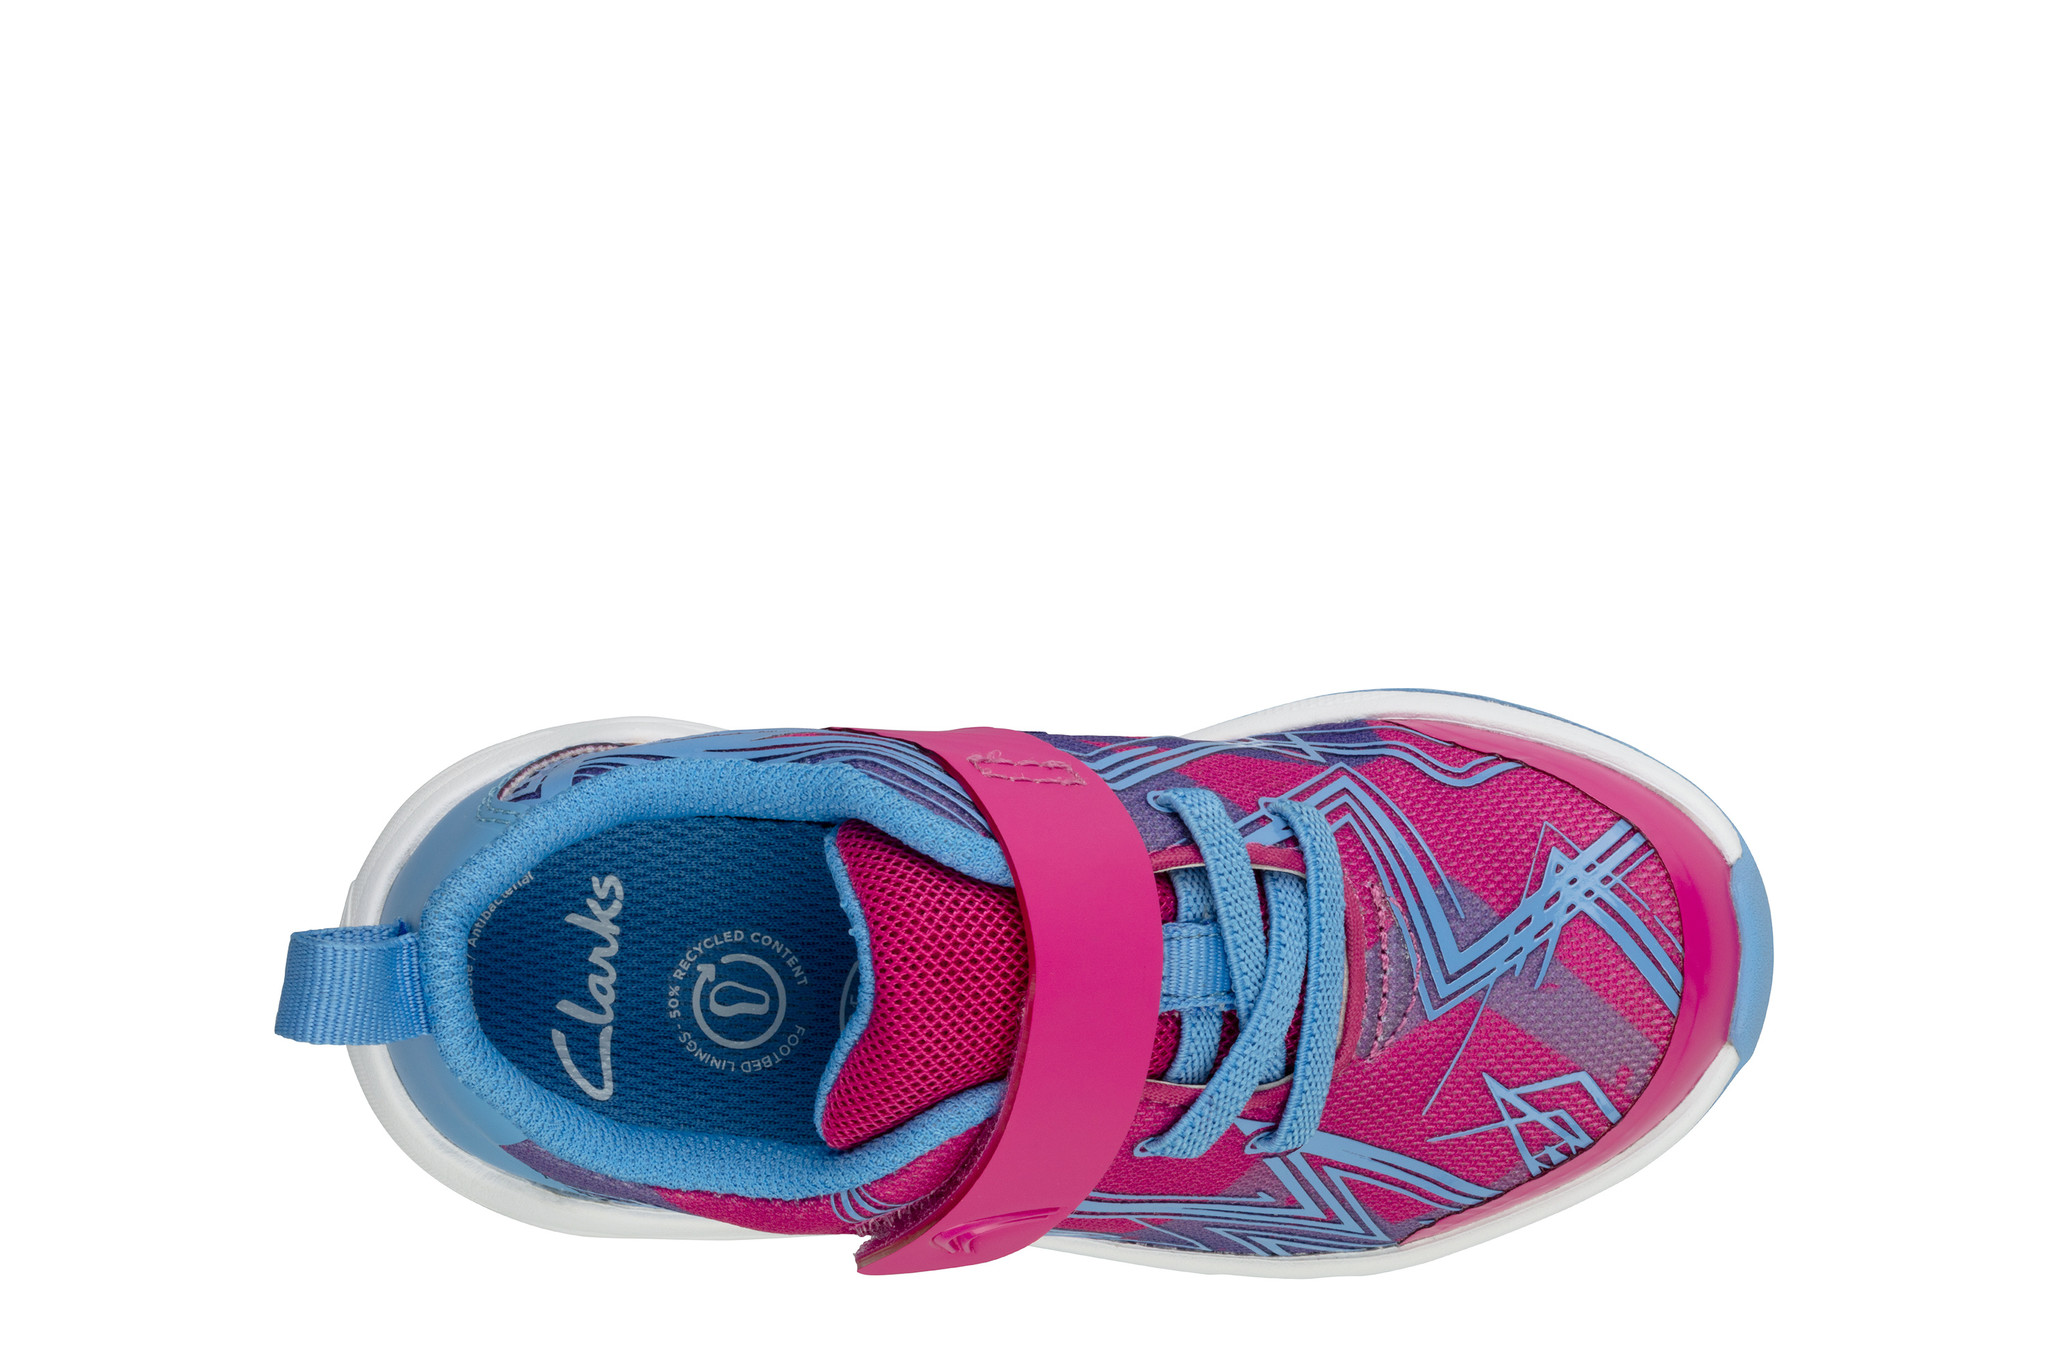 Clarks Aeon Pace Pink Combi Infant